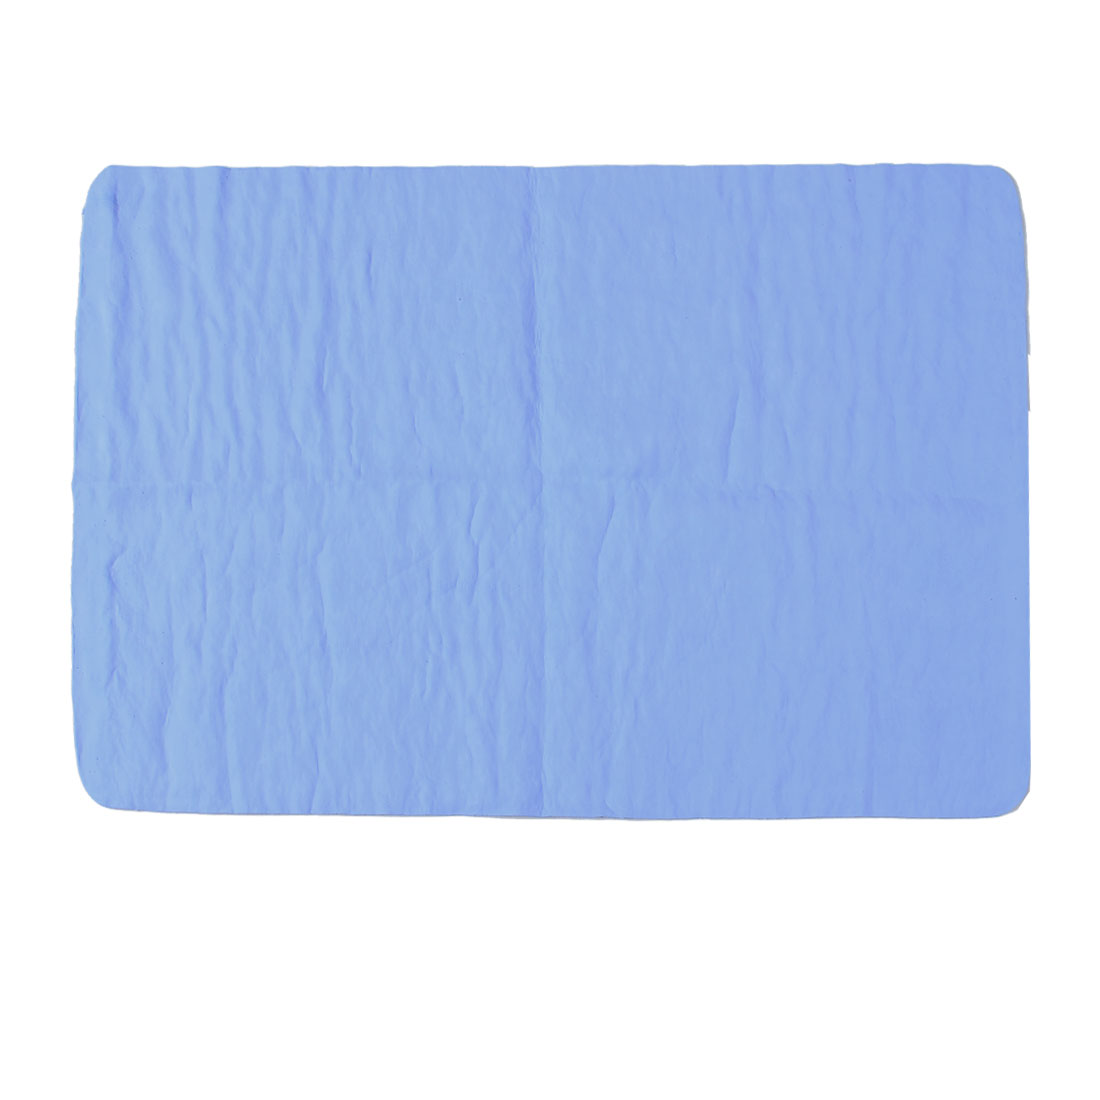 Vehicles Car Blue Synthetic Chamois Clean Cham Towel 43cm x 32cm